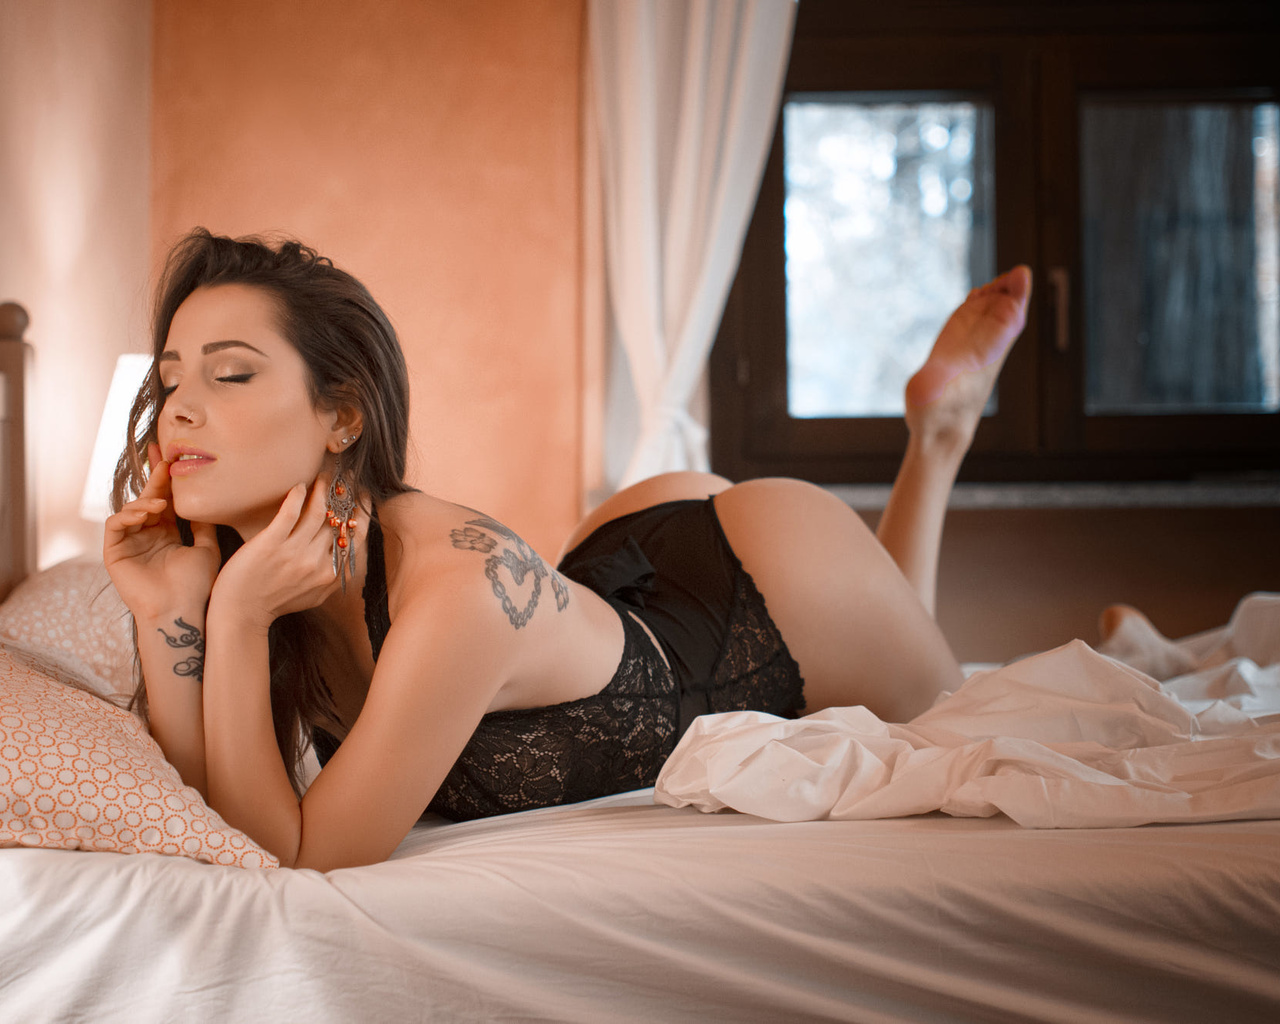 women, ass, body lingerie, window, tattoo, closed eyes, in bed, pillow, black lingerie, arched back, lamp, women indoors, feet in the air